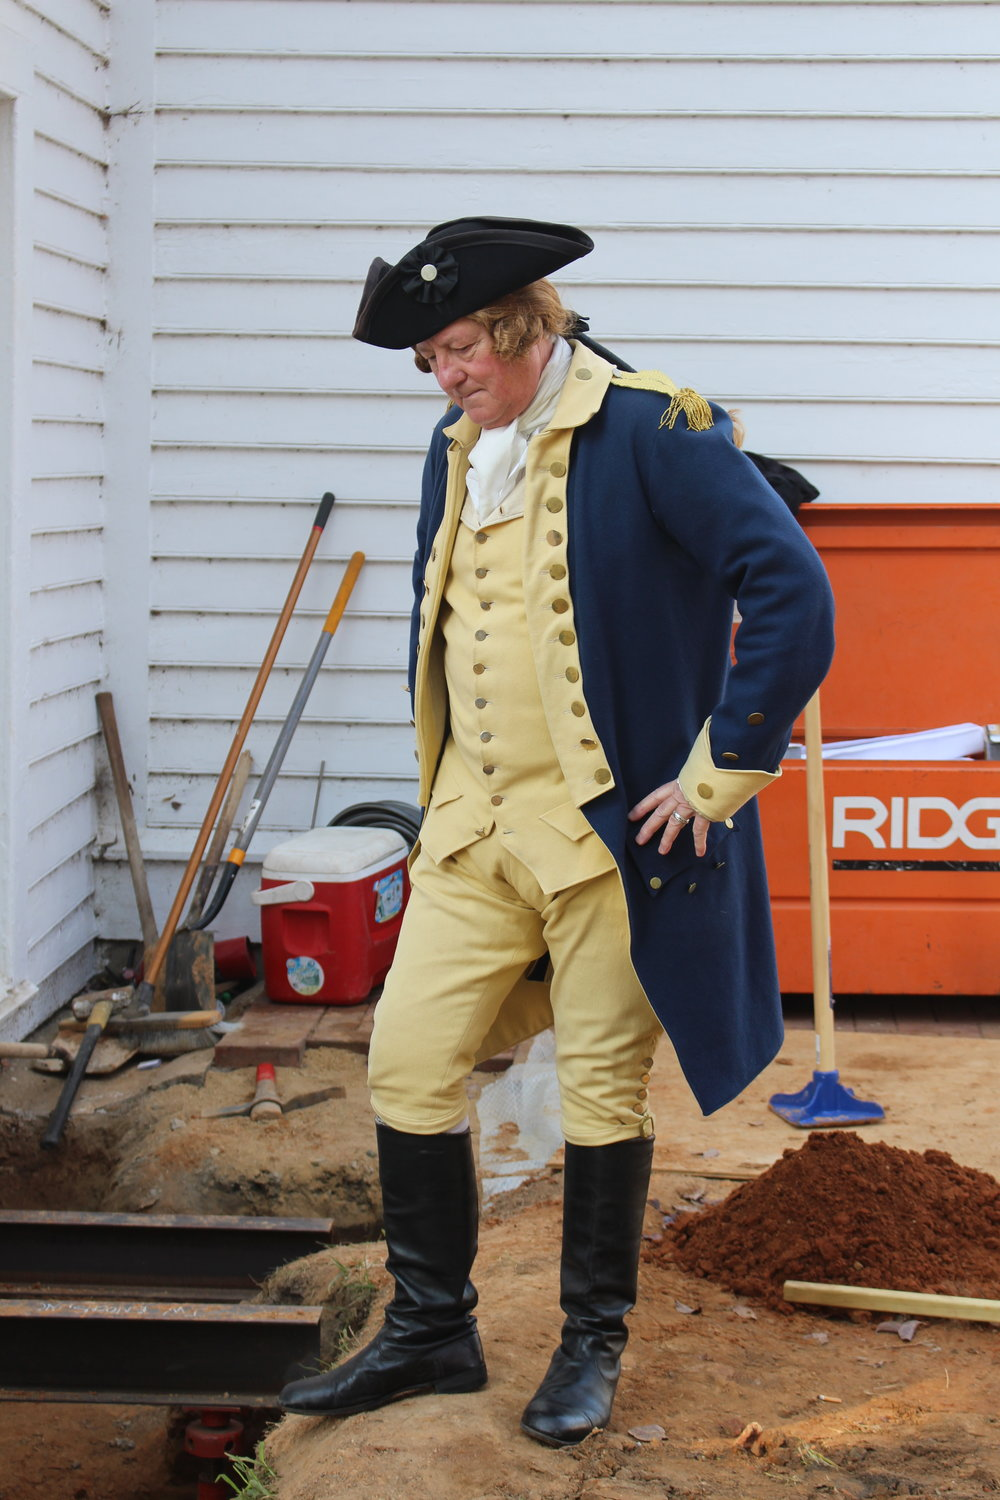 Colonel Washington inspects the progress